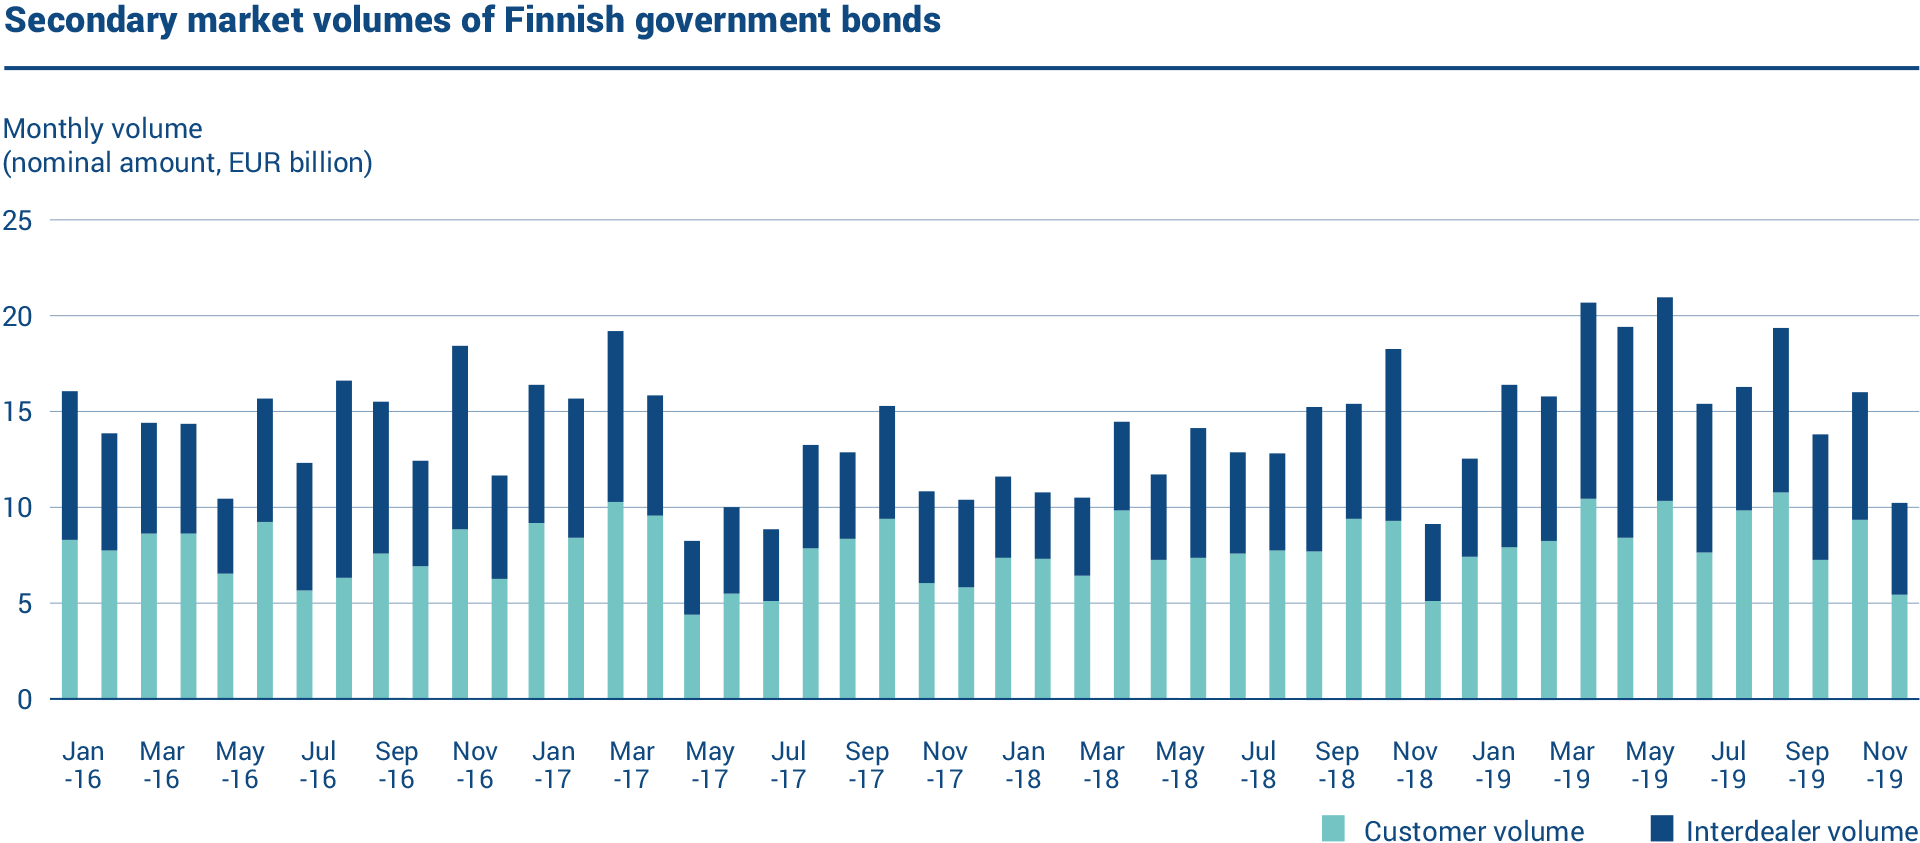 The graph shows the secondary market volumes of Finnish government bonds in 2016–19. In 2019, the nominal interdealer trading volume was on average EUR 7.6 billion per month. The average monthly customer volume was EUR 8.4 billion.